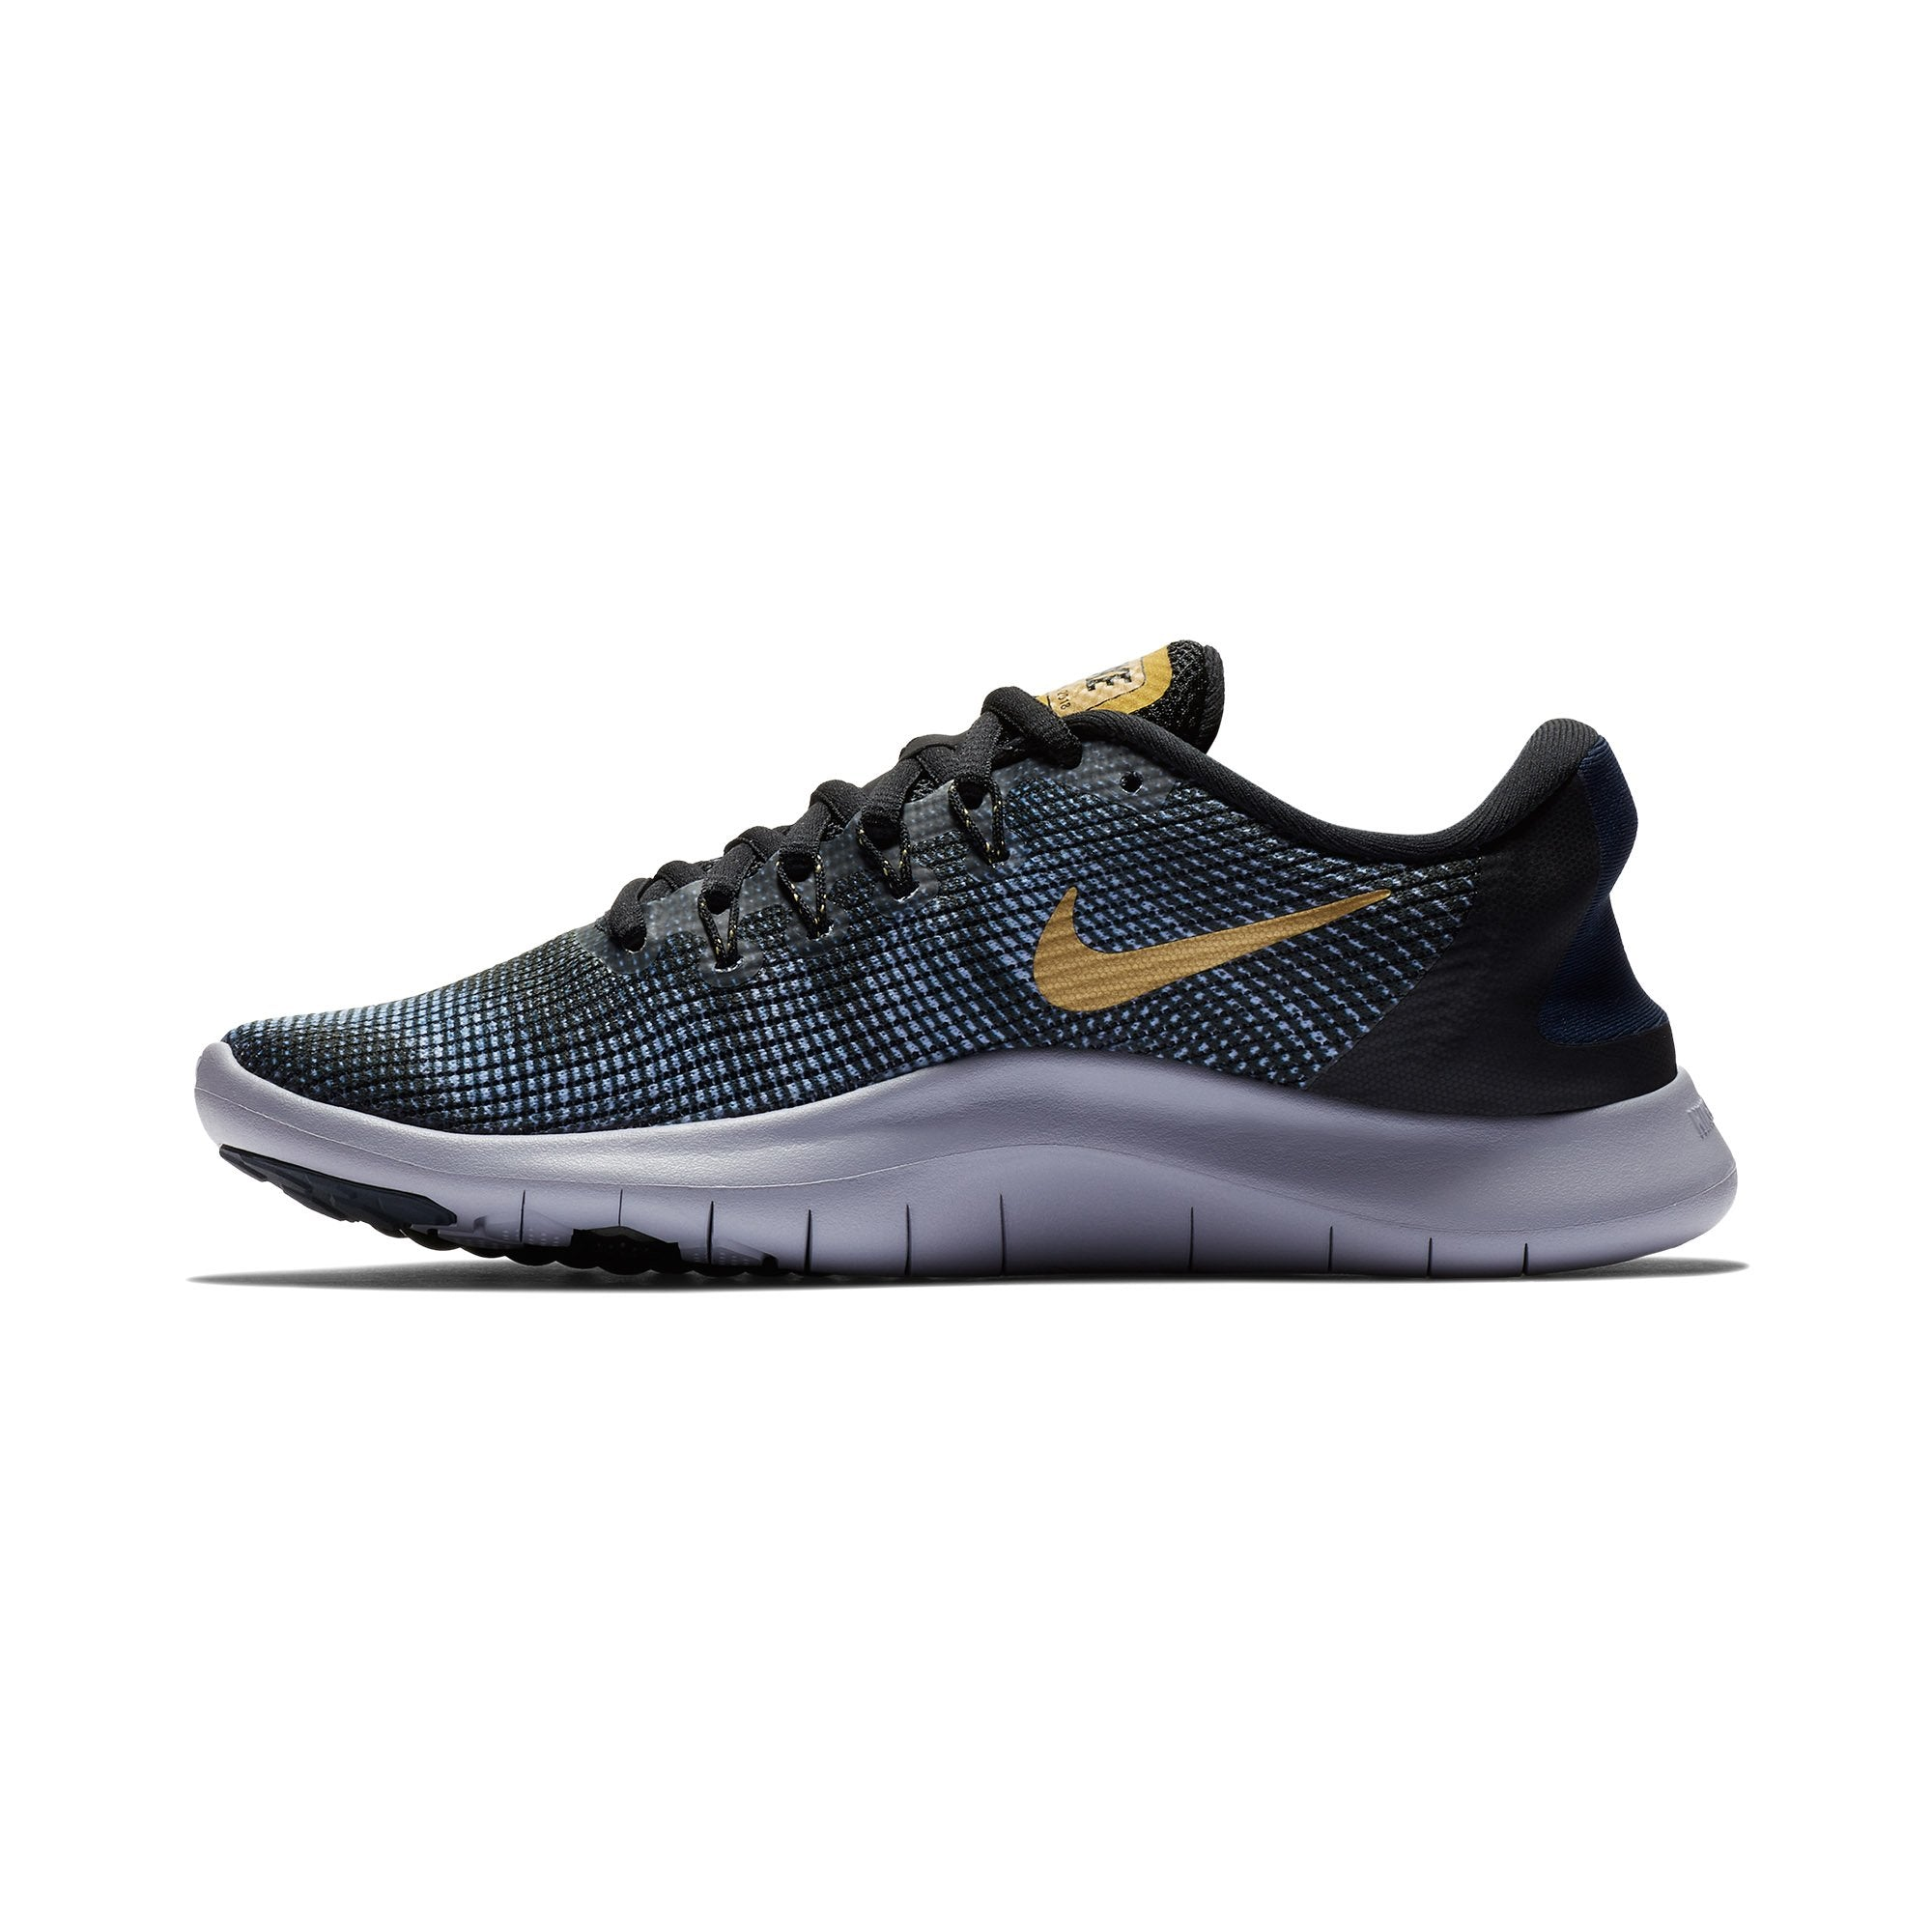 be0967b60da Buy Nike Women Flex Rn 2018 Running Shoes